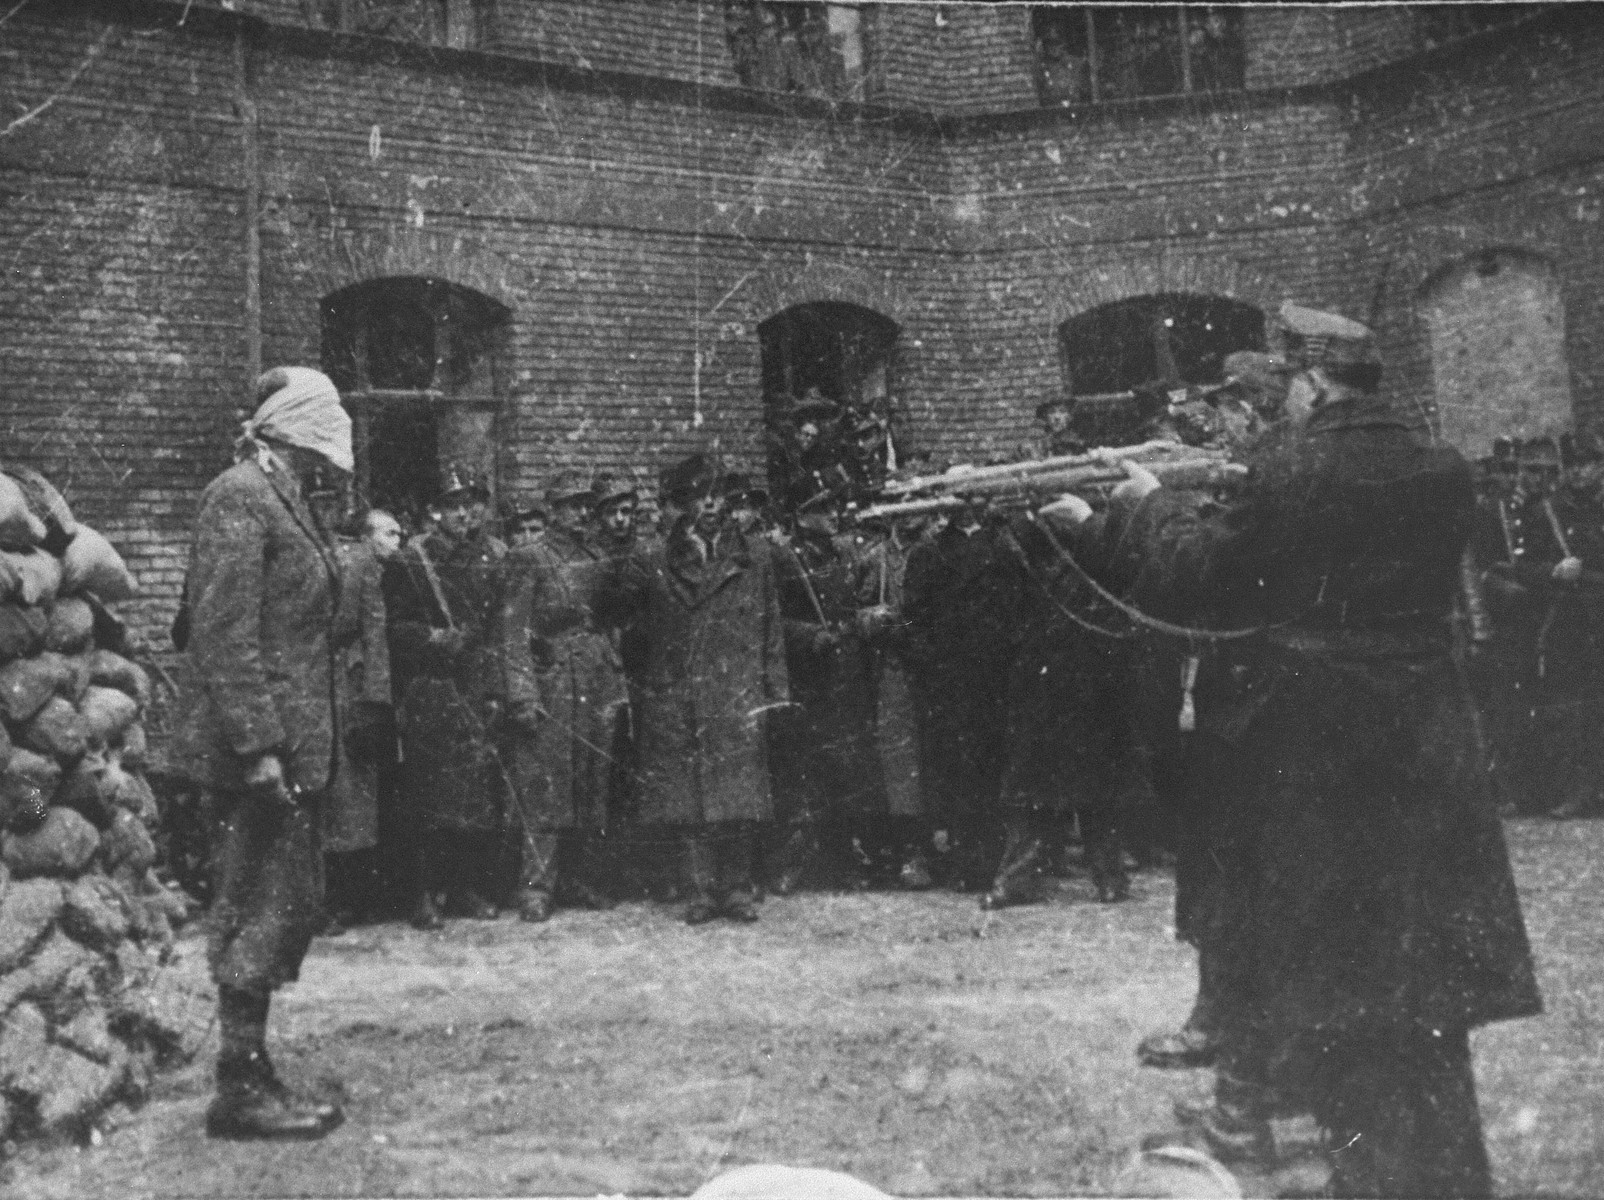 Hungarian soldiers prepare to execute Bela Imredy, the former Prime Minister in the Sztojay government.  The second trial of a former Hungarian government official to be undertaken by the People's Tribunal in Budapest, the trial of former Prime Minister Bela Imredy began on November 14, 1945 in the Budapest Academy of Music and lasted until November 23, 1945.  Imredy was charged with responsibility for enacting Hungary's anti-Jewish legislation in 1938 and 1939, as well as with cooperating with the Third Reich, crimes for which he was found convicted and executed on February 28, 1946.